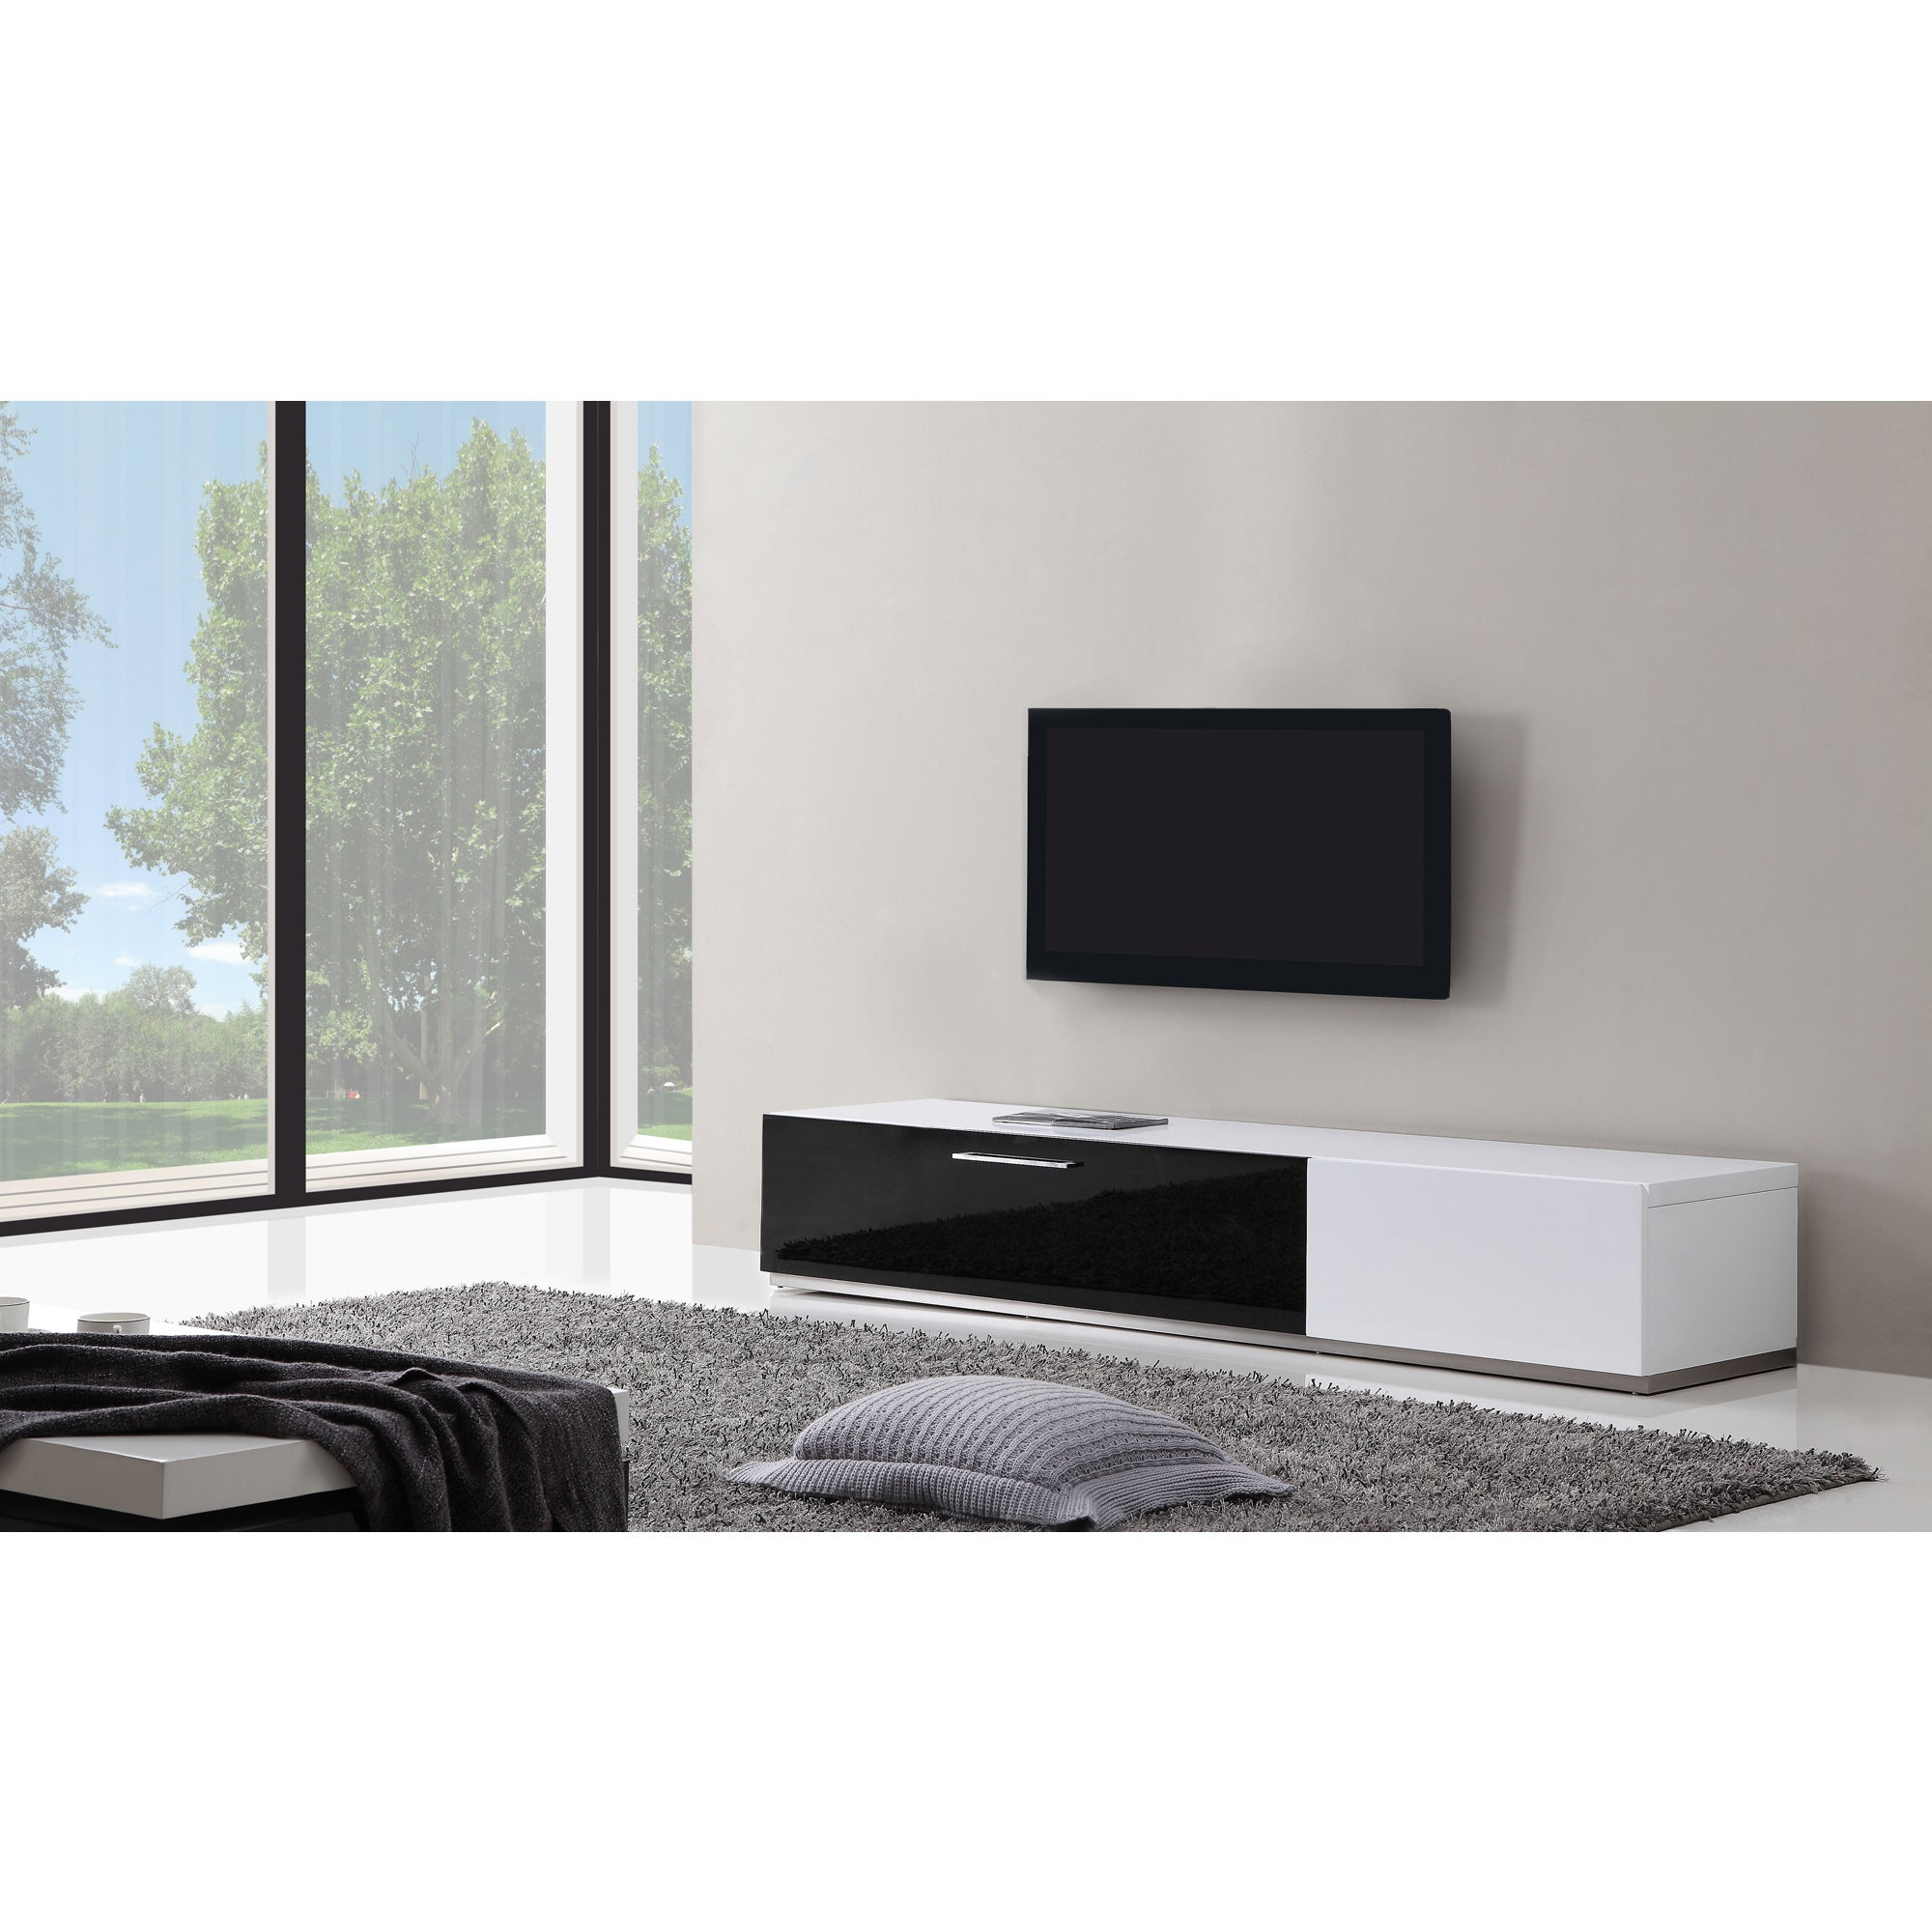 Shop B-Modern Producer White/ Black Modern TV Stand with IR Glass ...